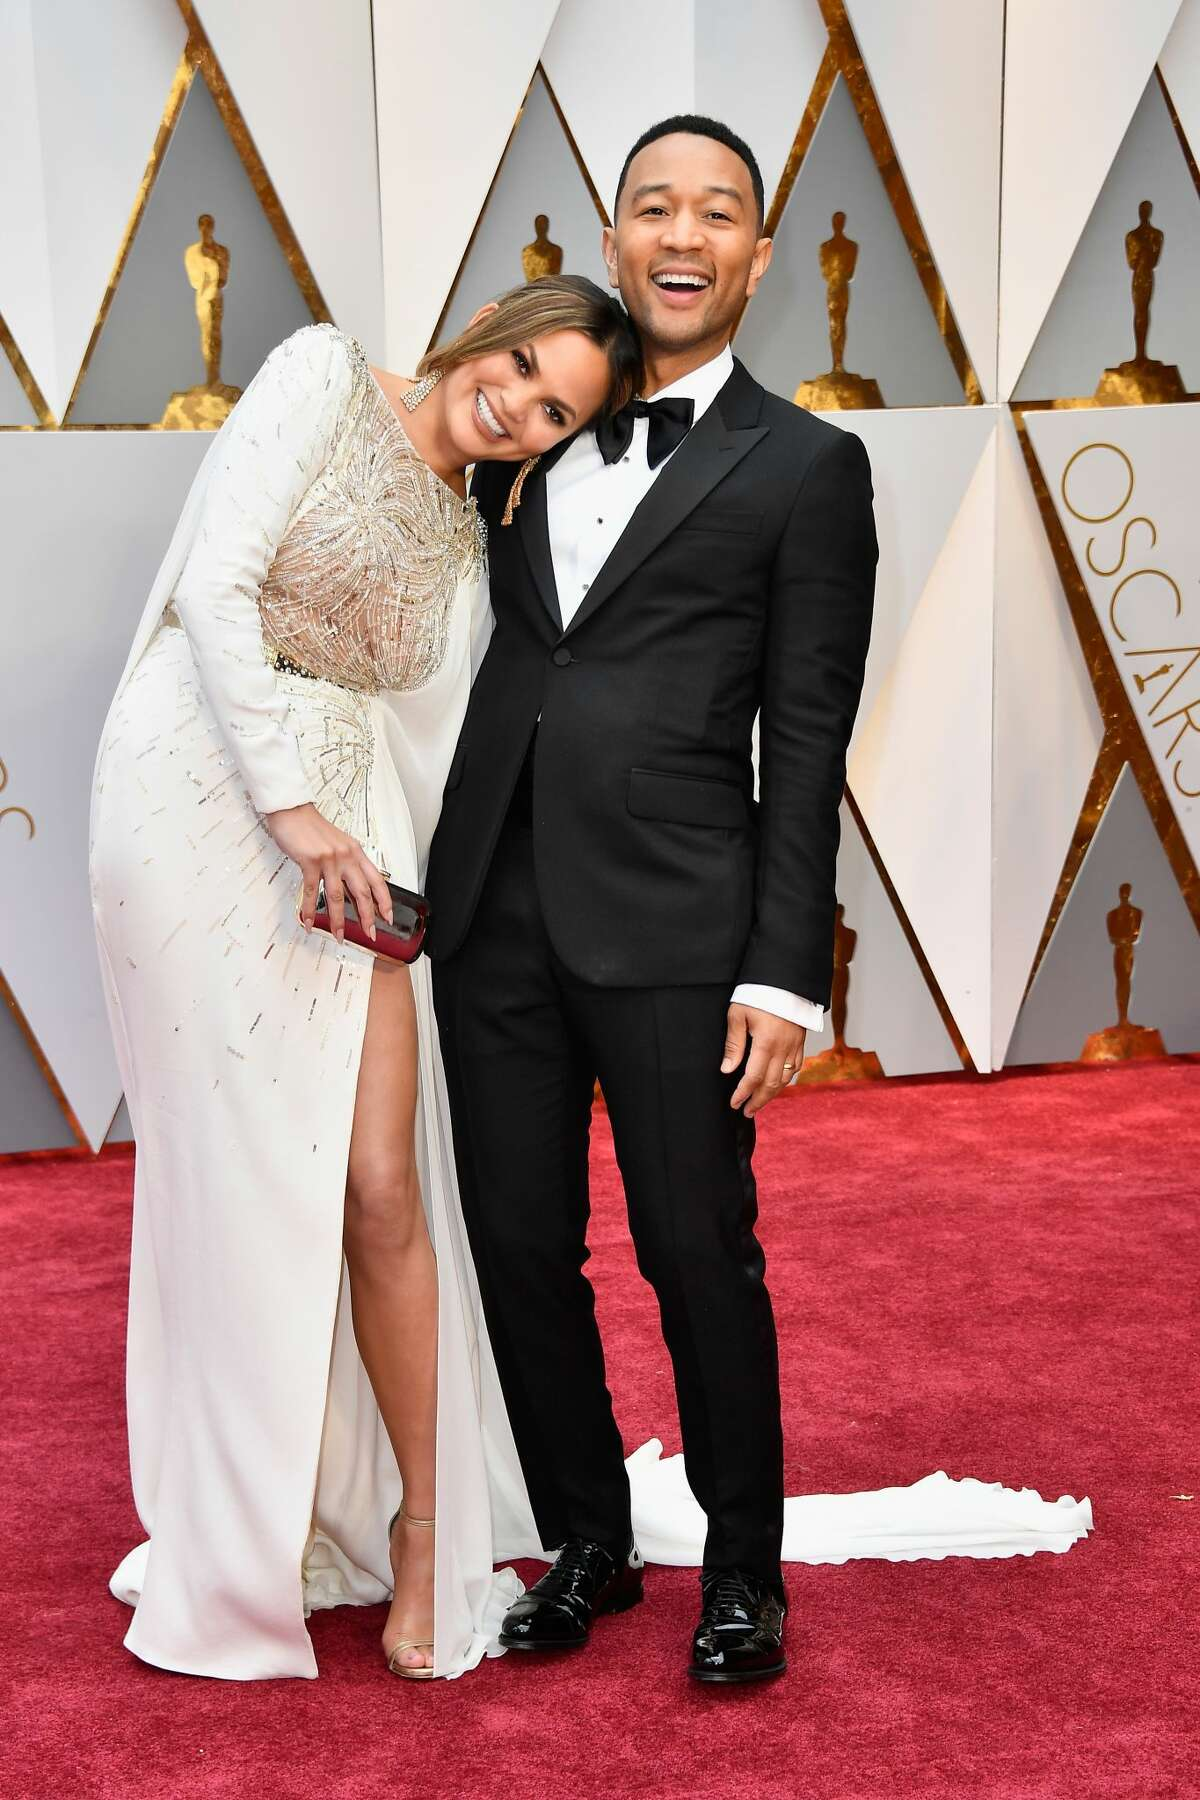 Model Chrissy Teigen (L) and singer John Legend attend the 89th Annual Academy Awards on February 26, 2017.